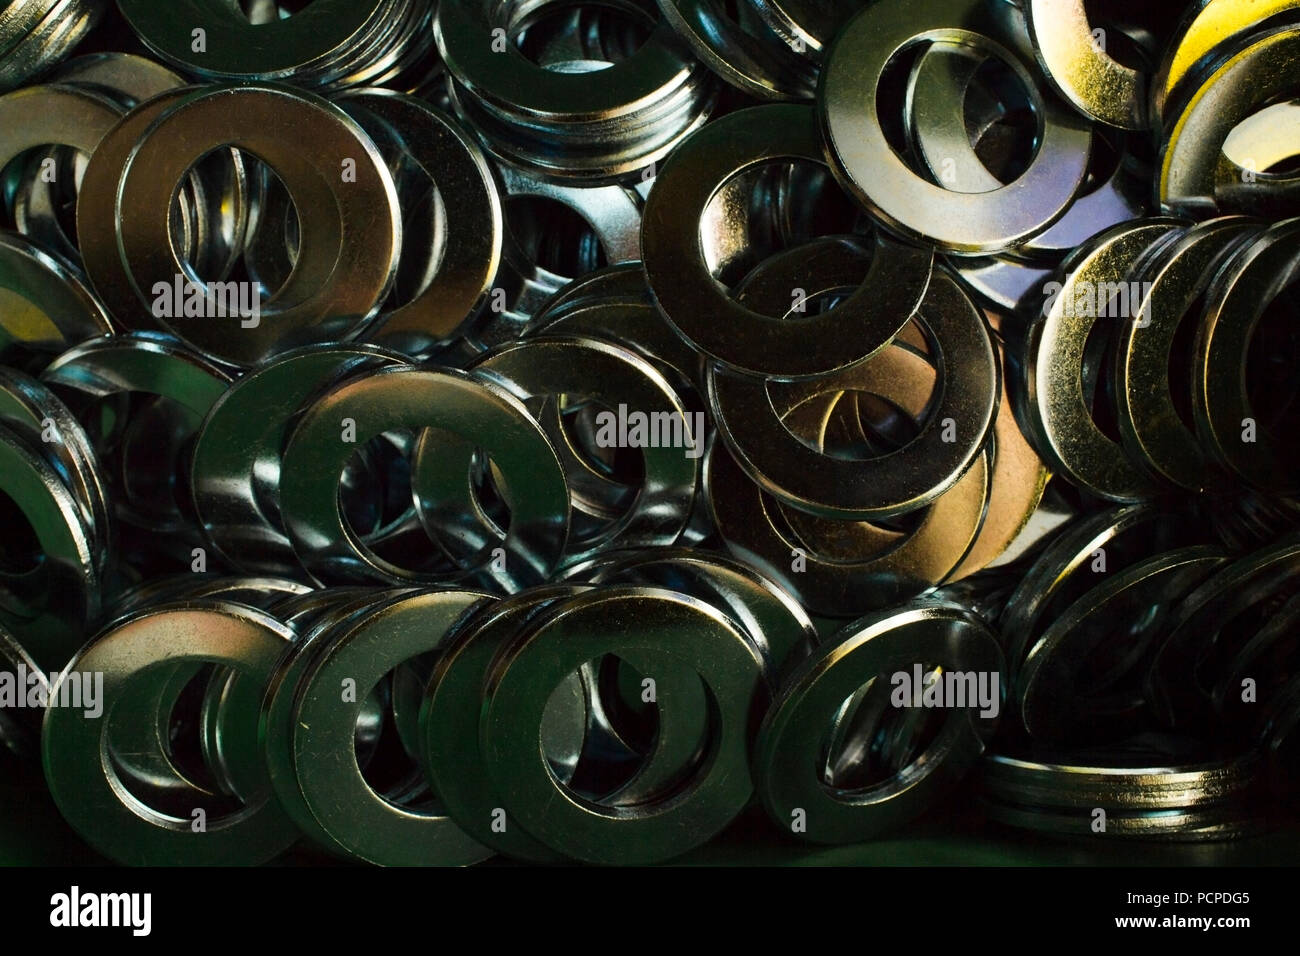 Pile of galvanized steel washers reflecting different colors in the sun light - Stock Image